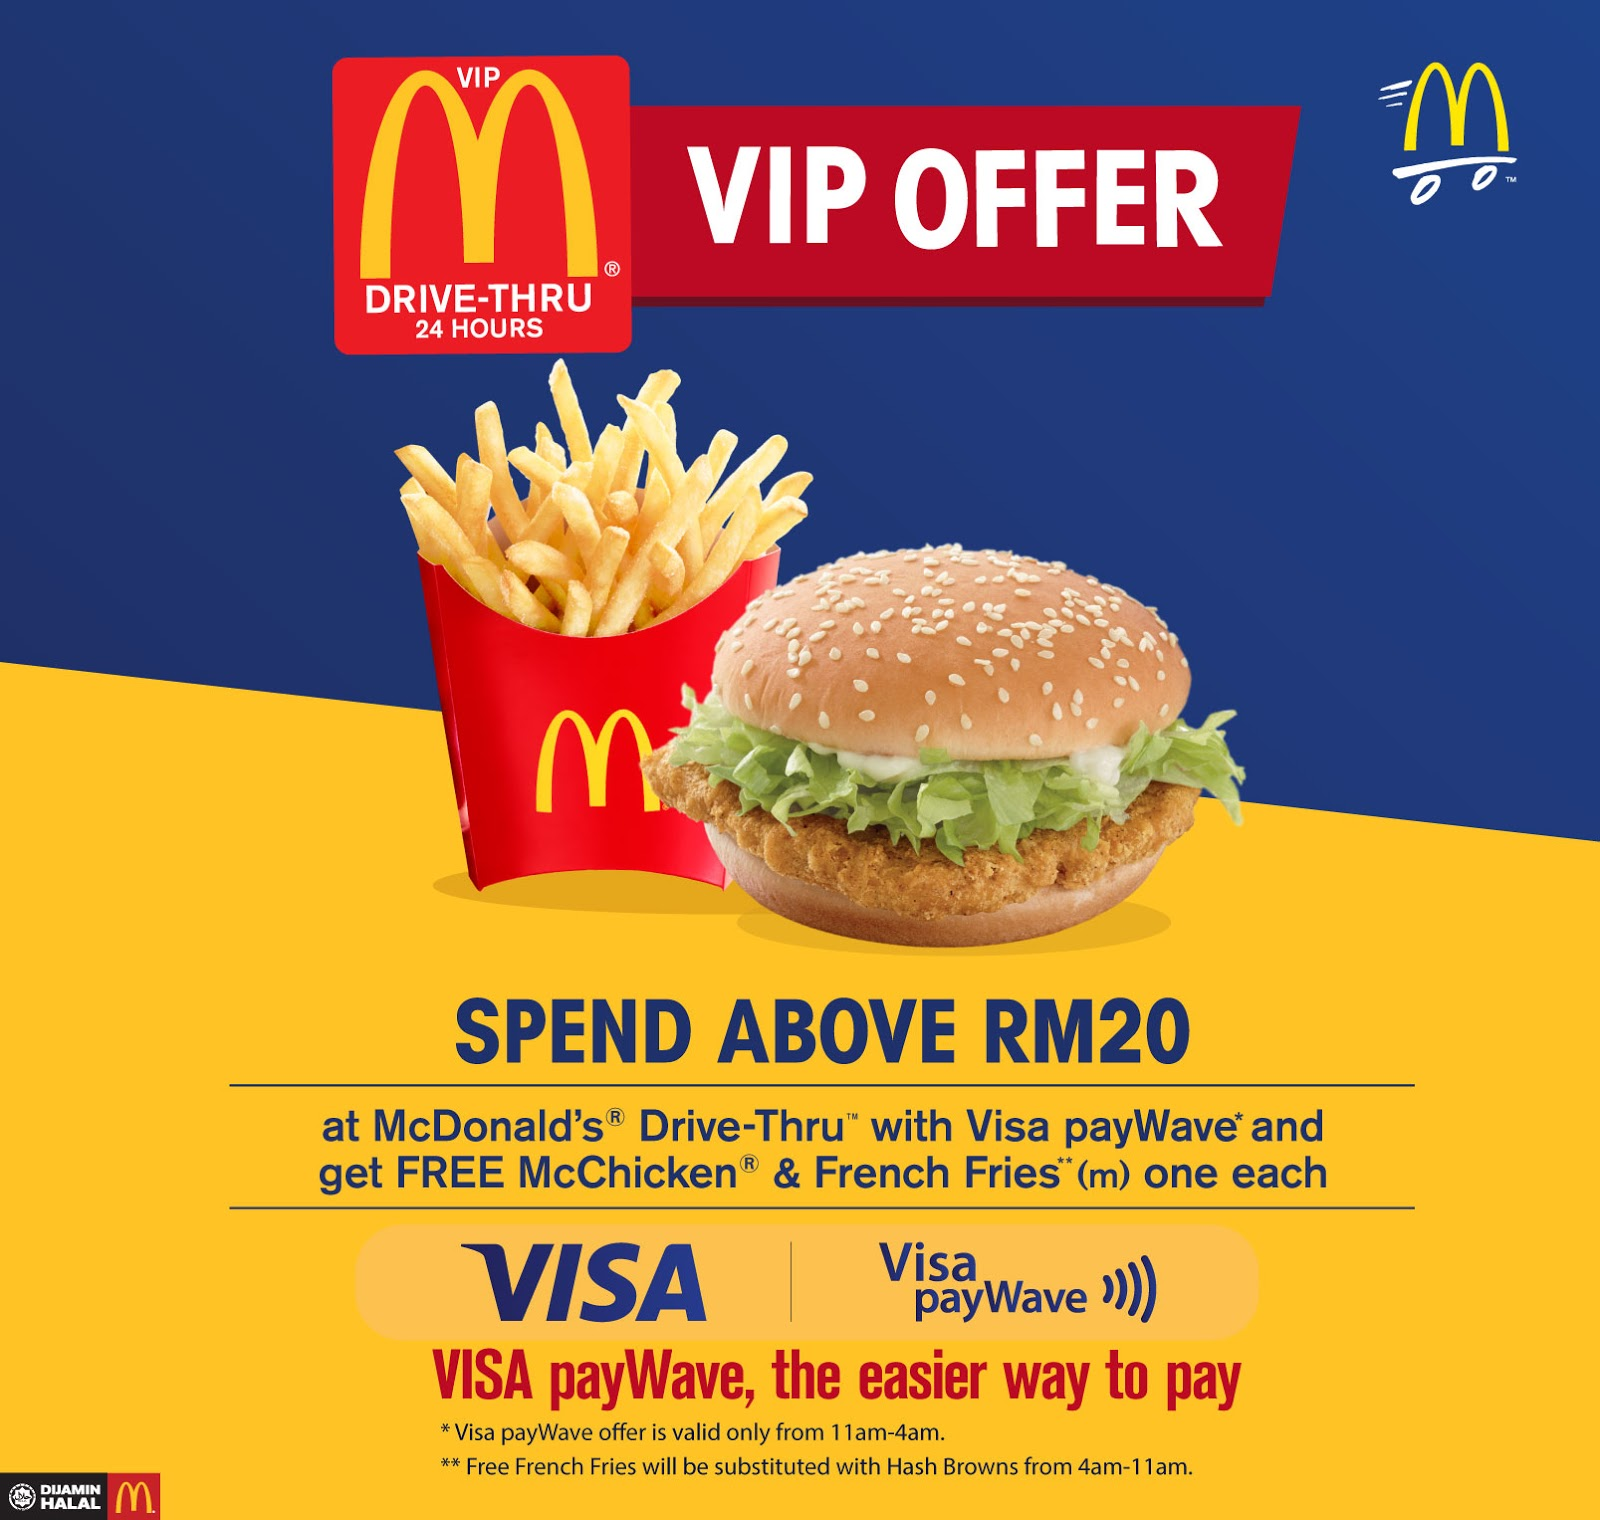 Mcd Drive Thru Vip Member Free Mcchicken French Fries Minimum